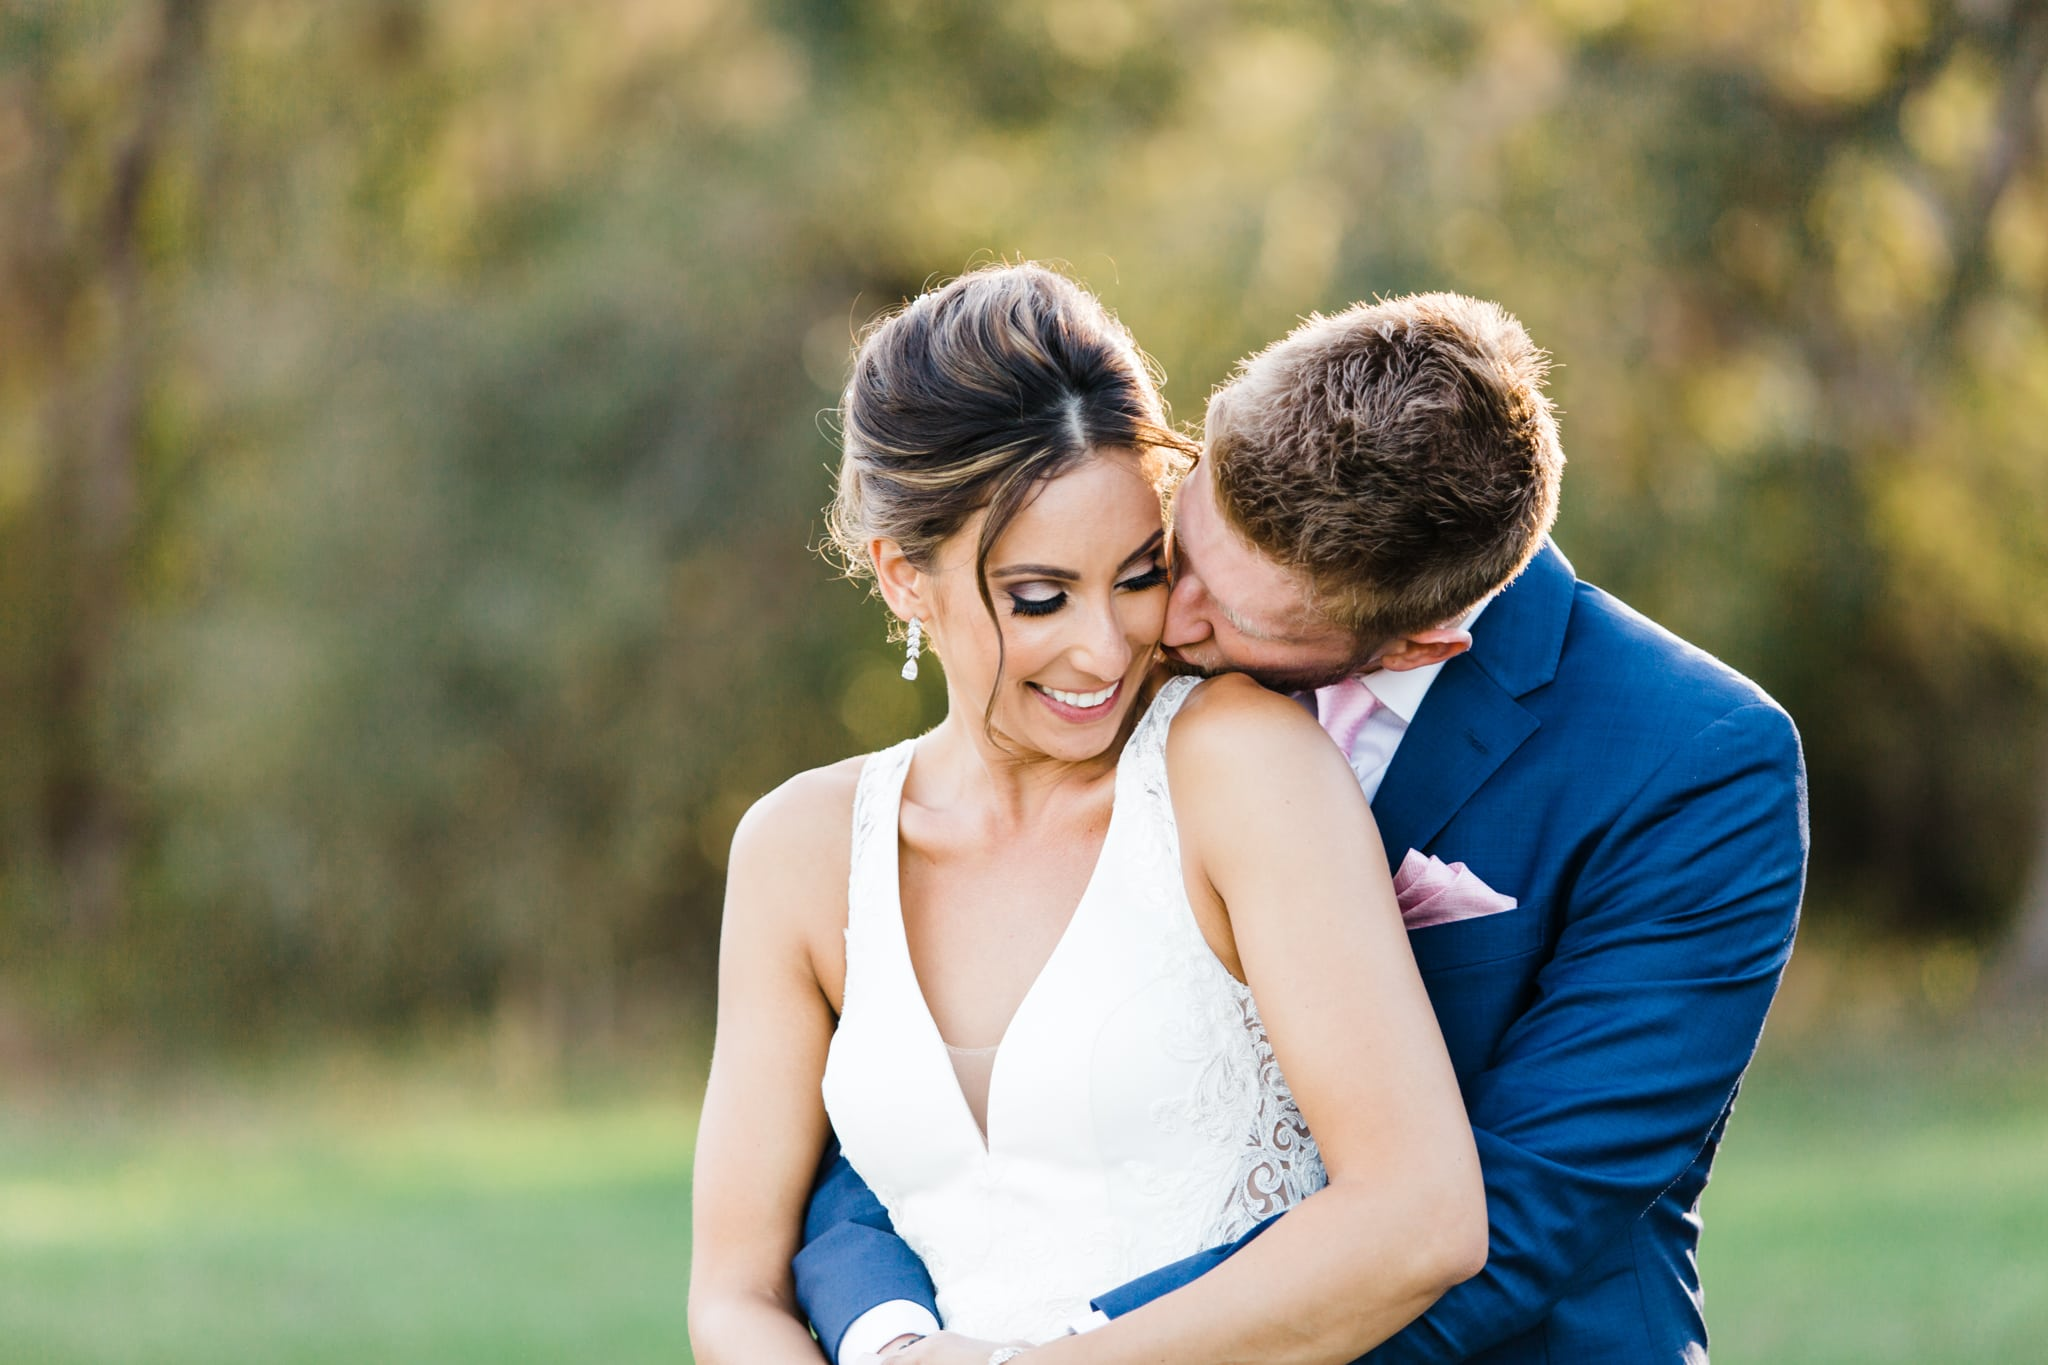 sun kissed bride and groom embracing each other during golden hour at October oaks farm in lake county florida